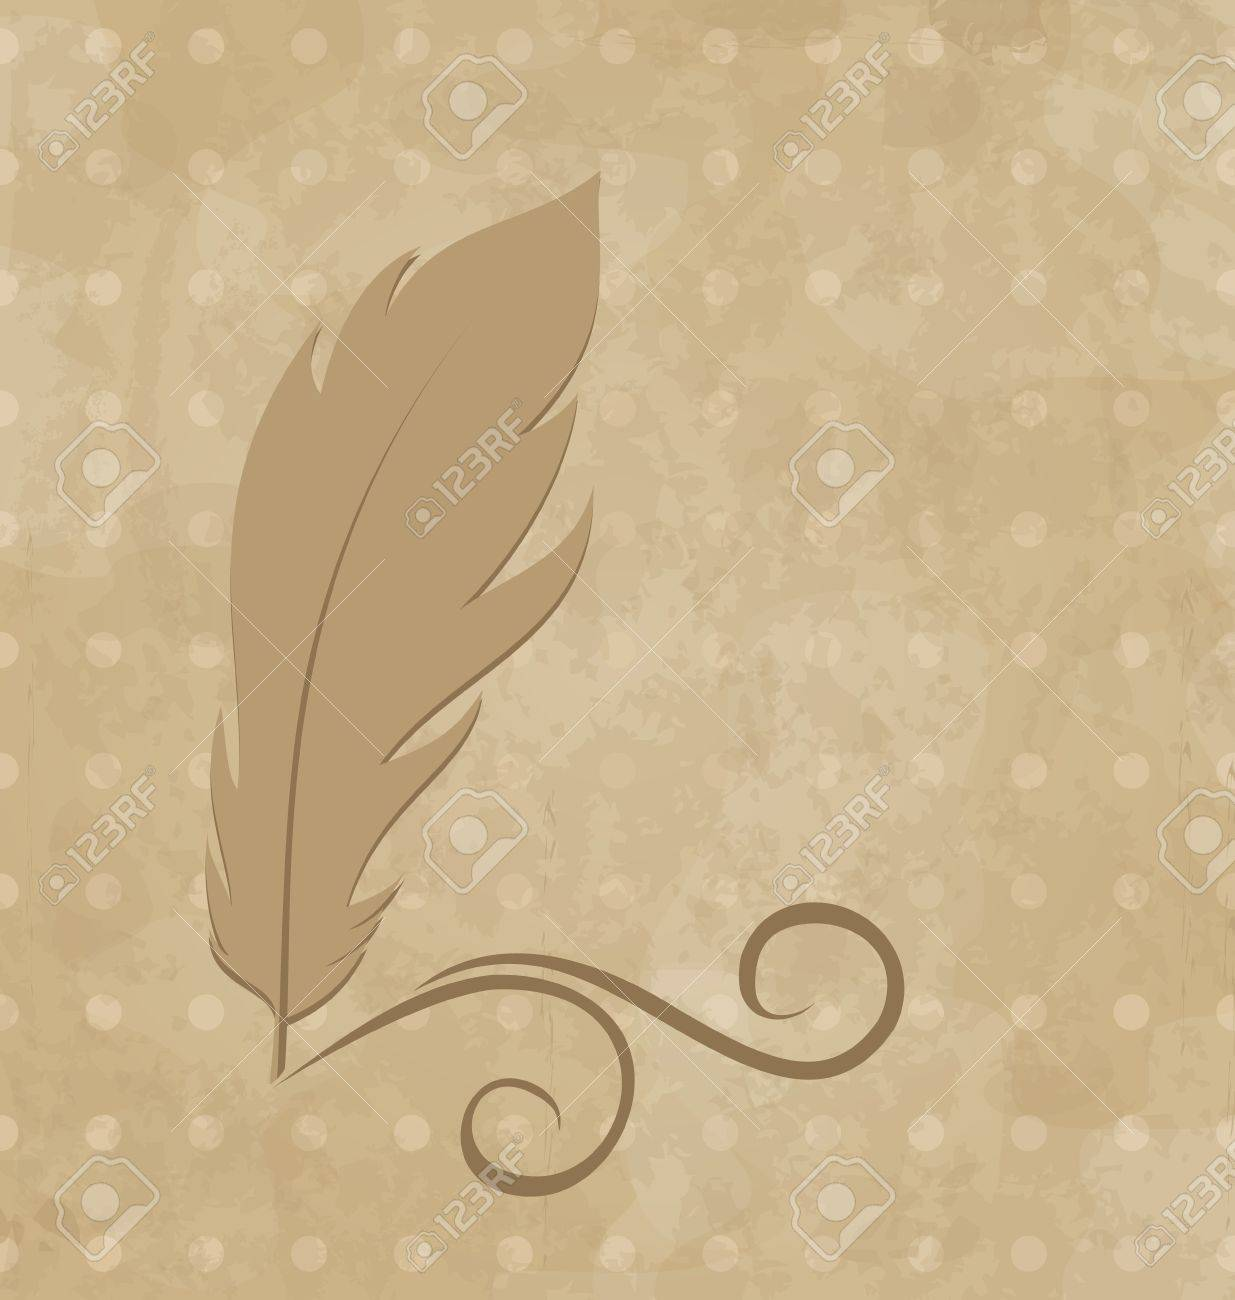 Illustration feather calligraphic pen, vintage background - vector Stock Photo - 22096287